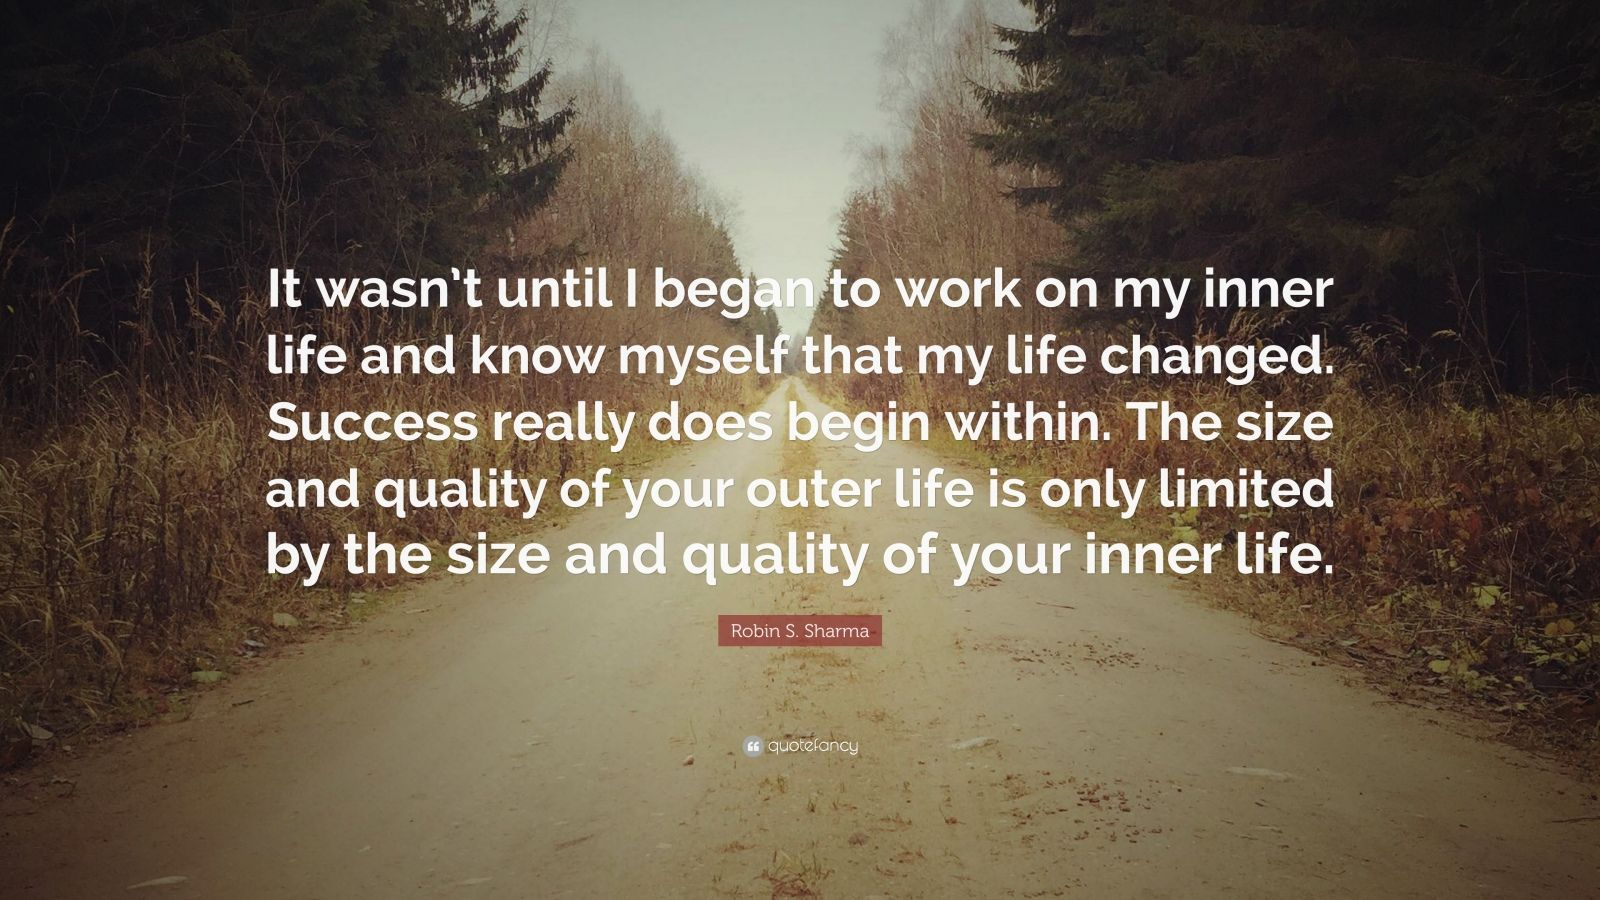 "Robin S. Sharma Quote: ""It wasn't until I began to work on my inner life and know myself that my life changed. Success really does begin within. The size and quality of your outer life is only limited by the size and quality of your inner life."""